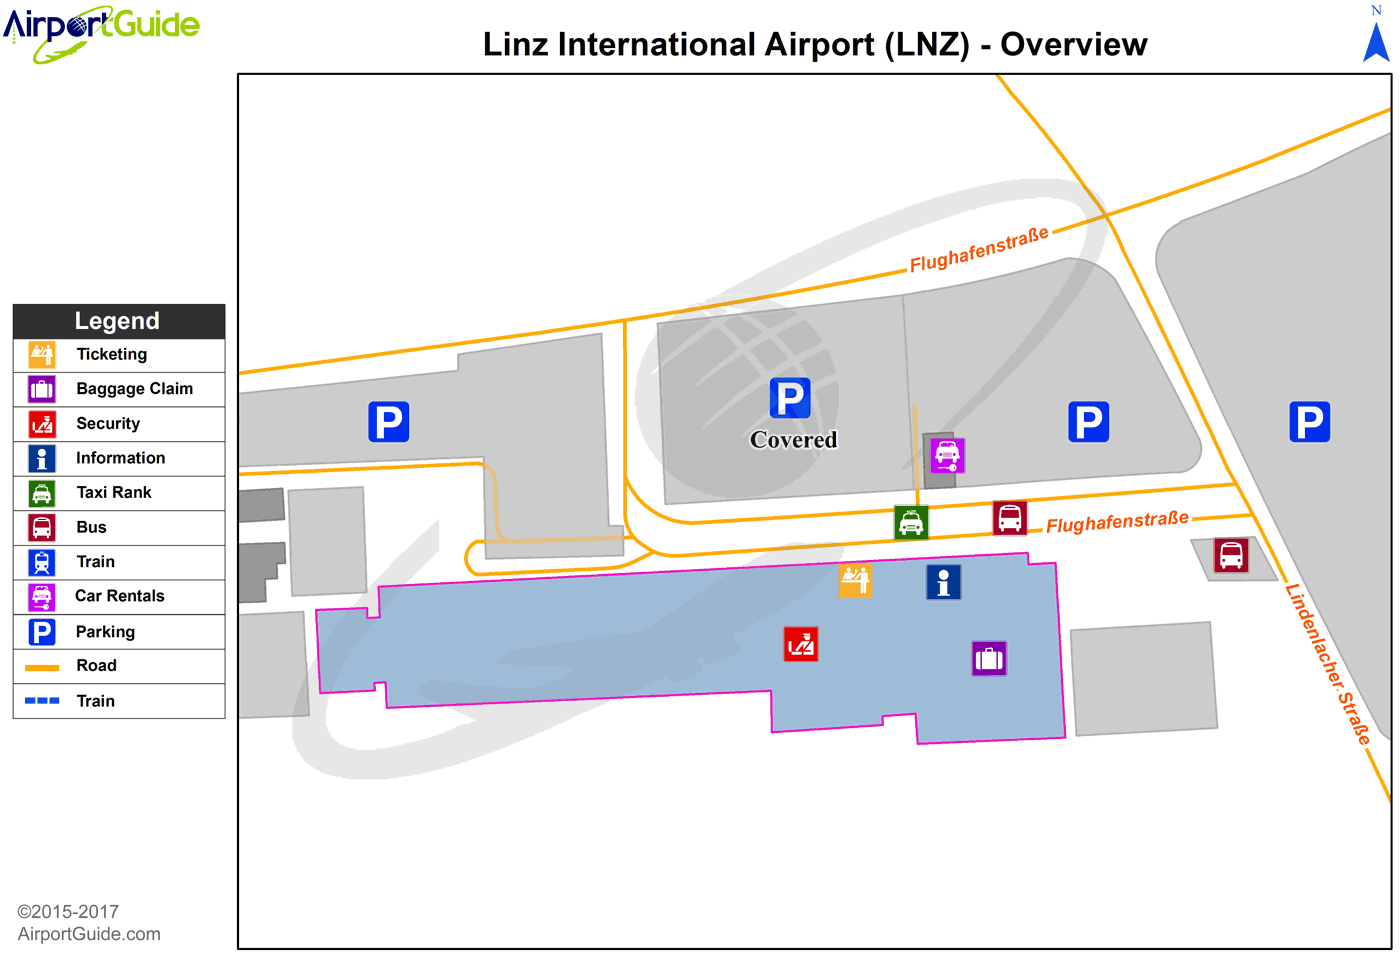 Linz - Linz (LNZ) Airport Terminal Map - Overview